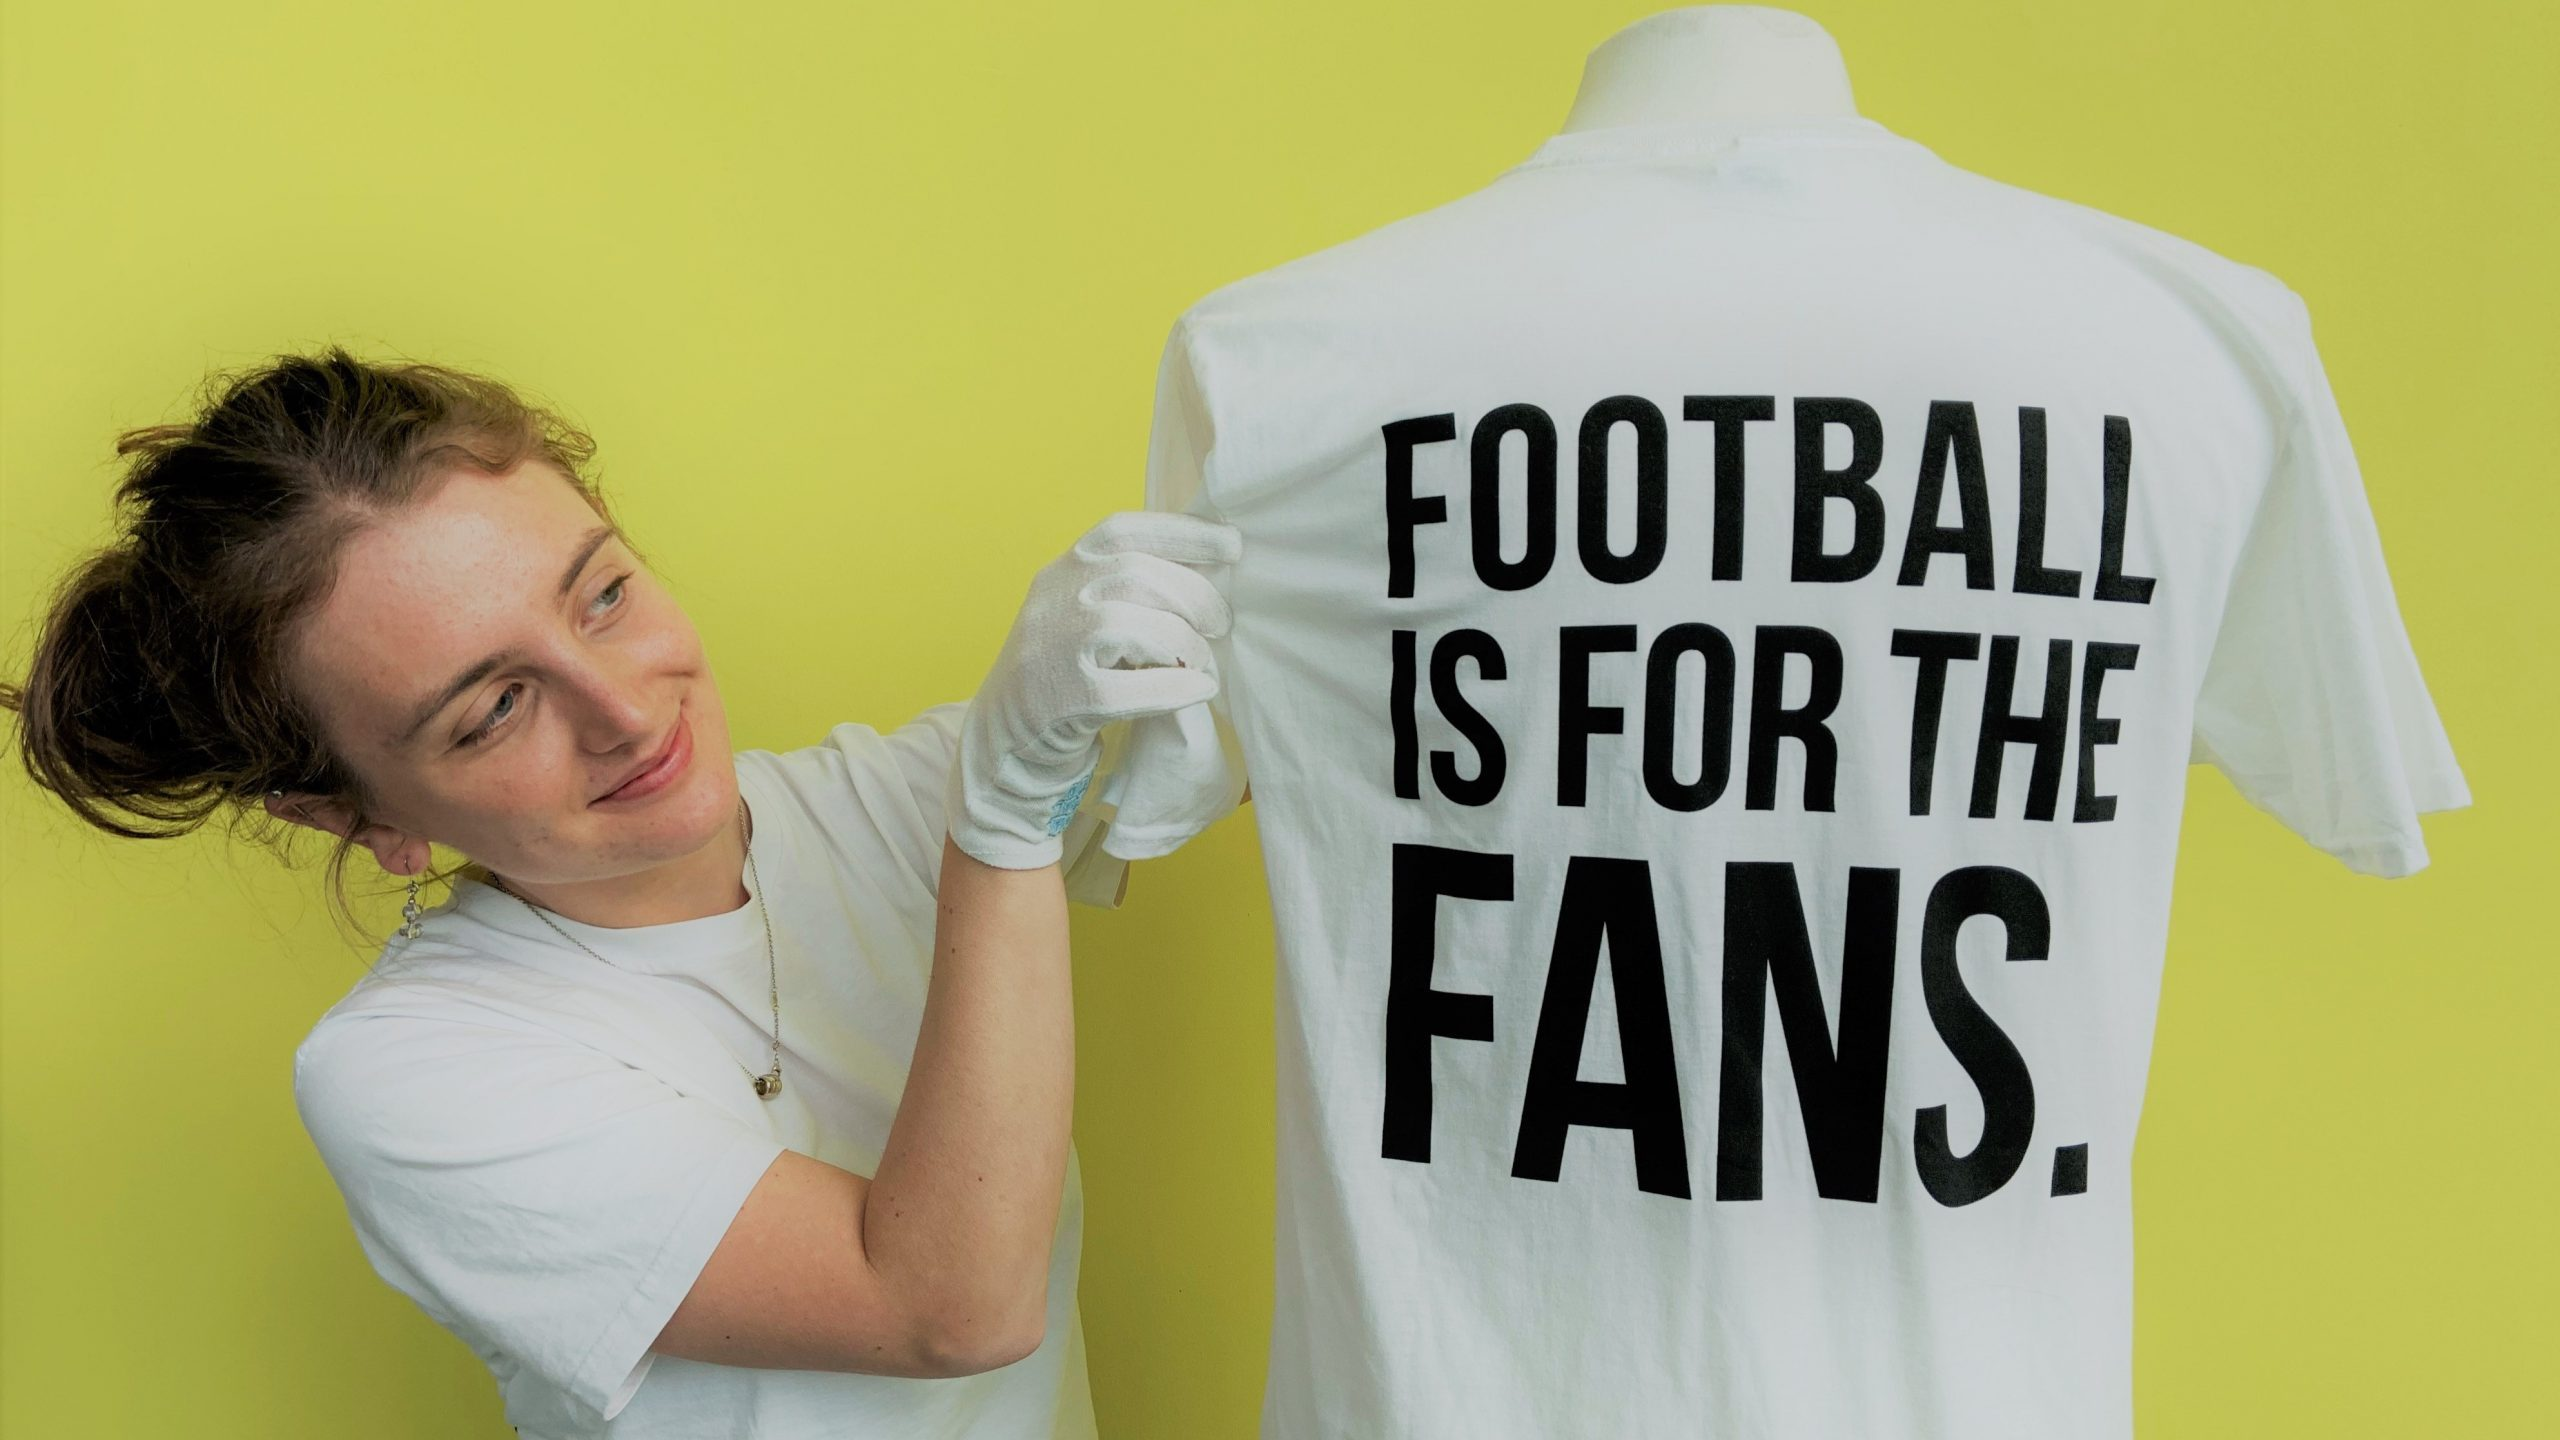 Tilly Johnson, a Museum Futures trainee at the National Football Museum, with the 'Earn It/Football Is For the Fans' T-shirt